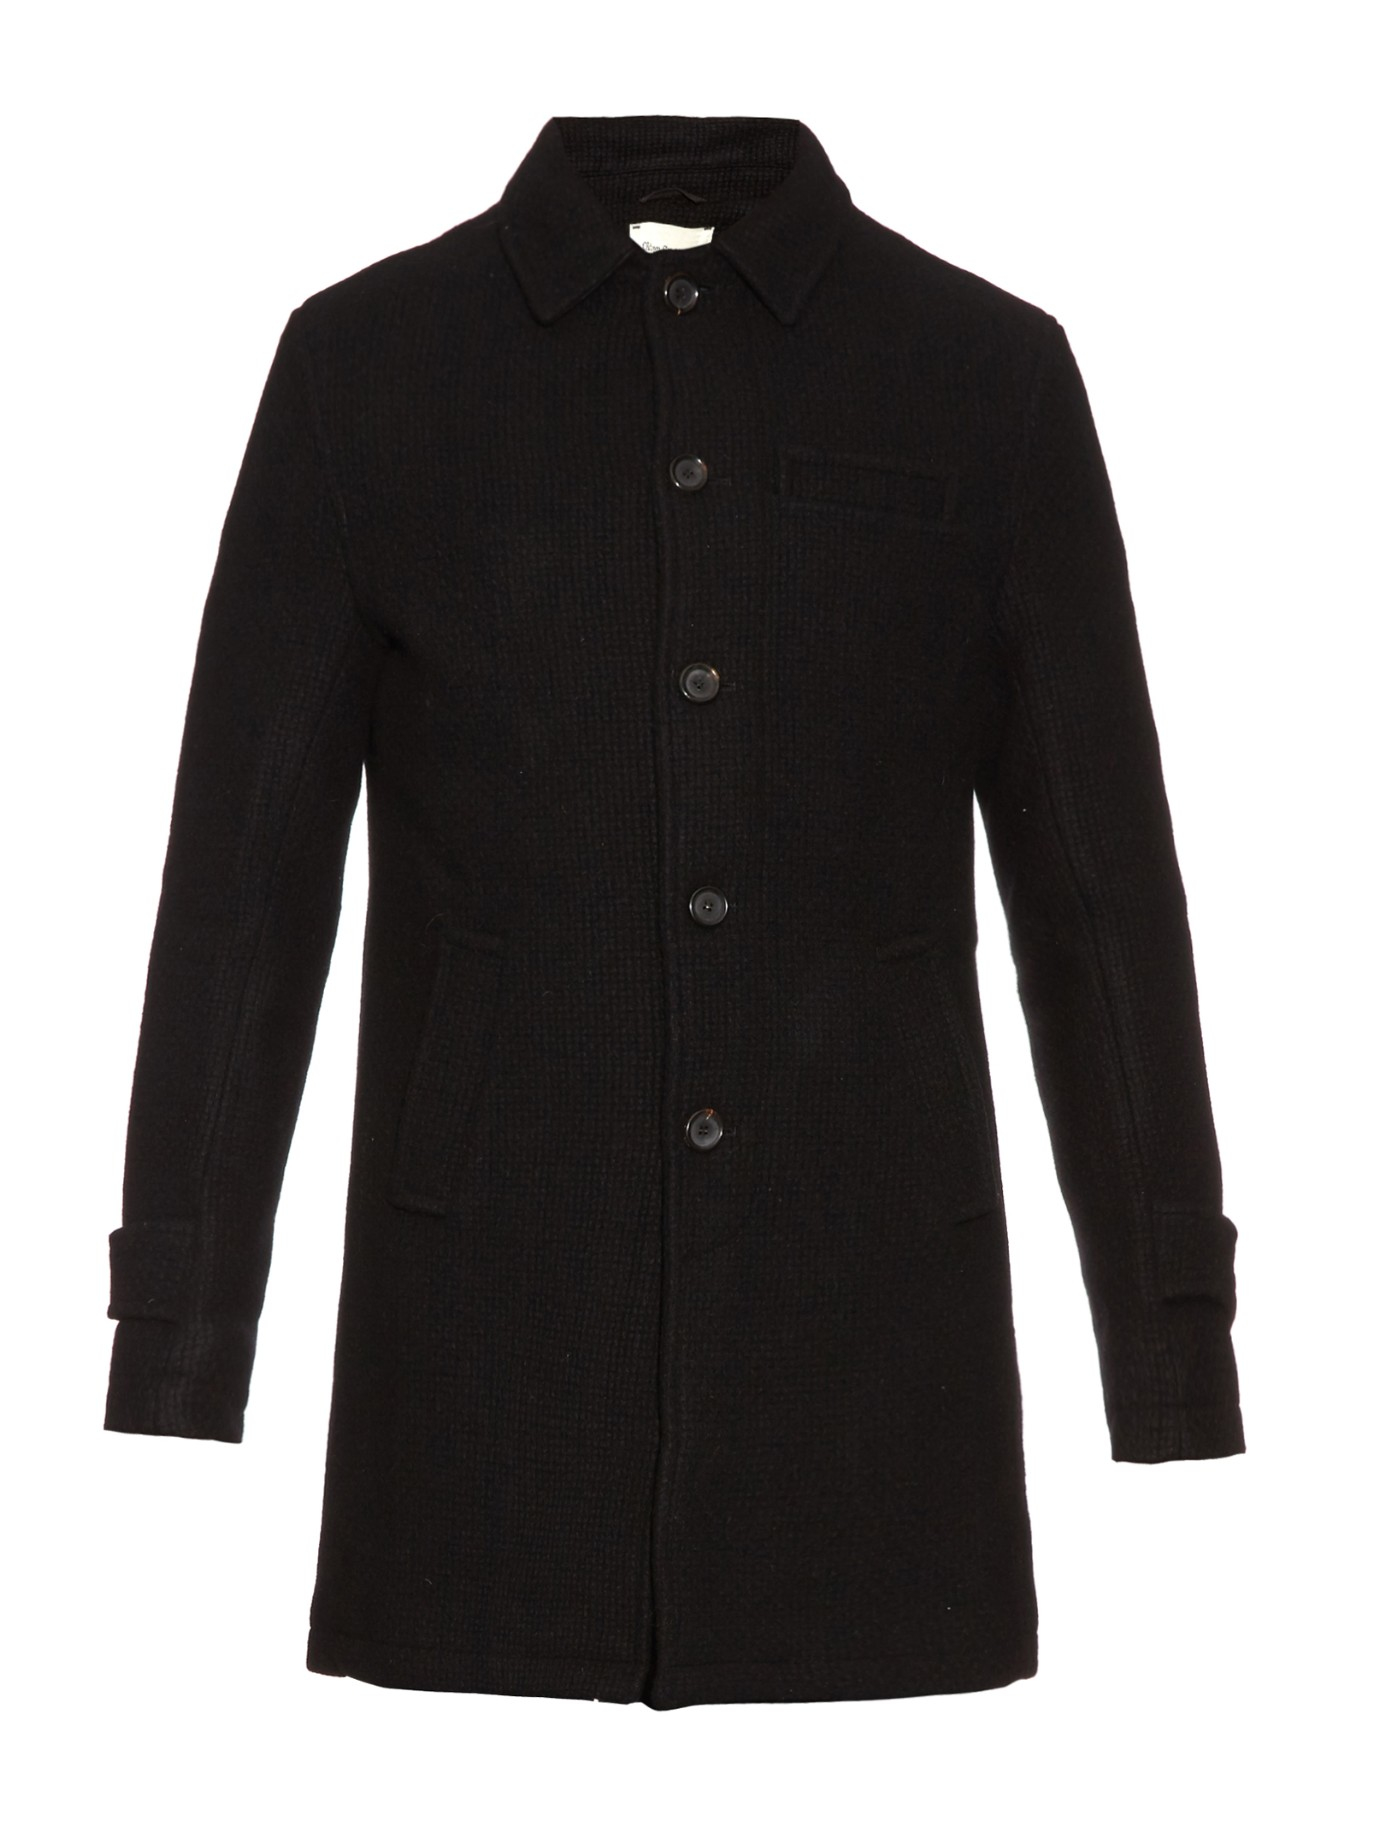 Oliver spencer Textured Wool Coat in Black for Men | Lyst